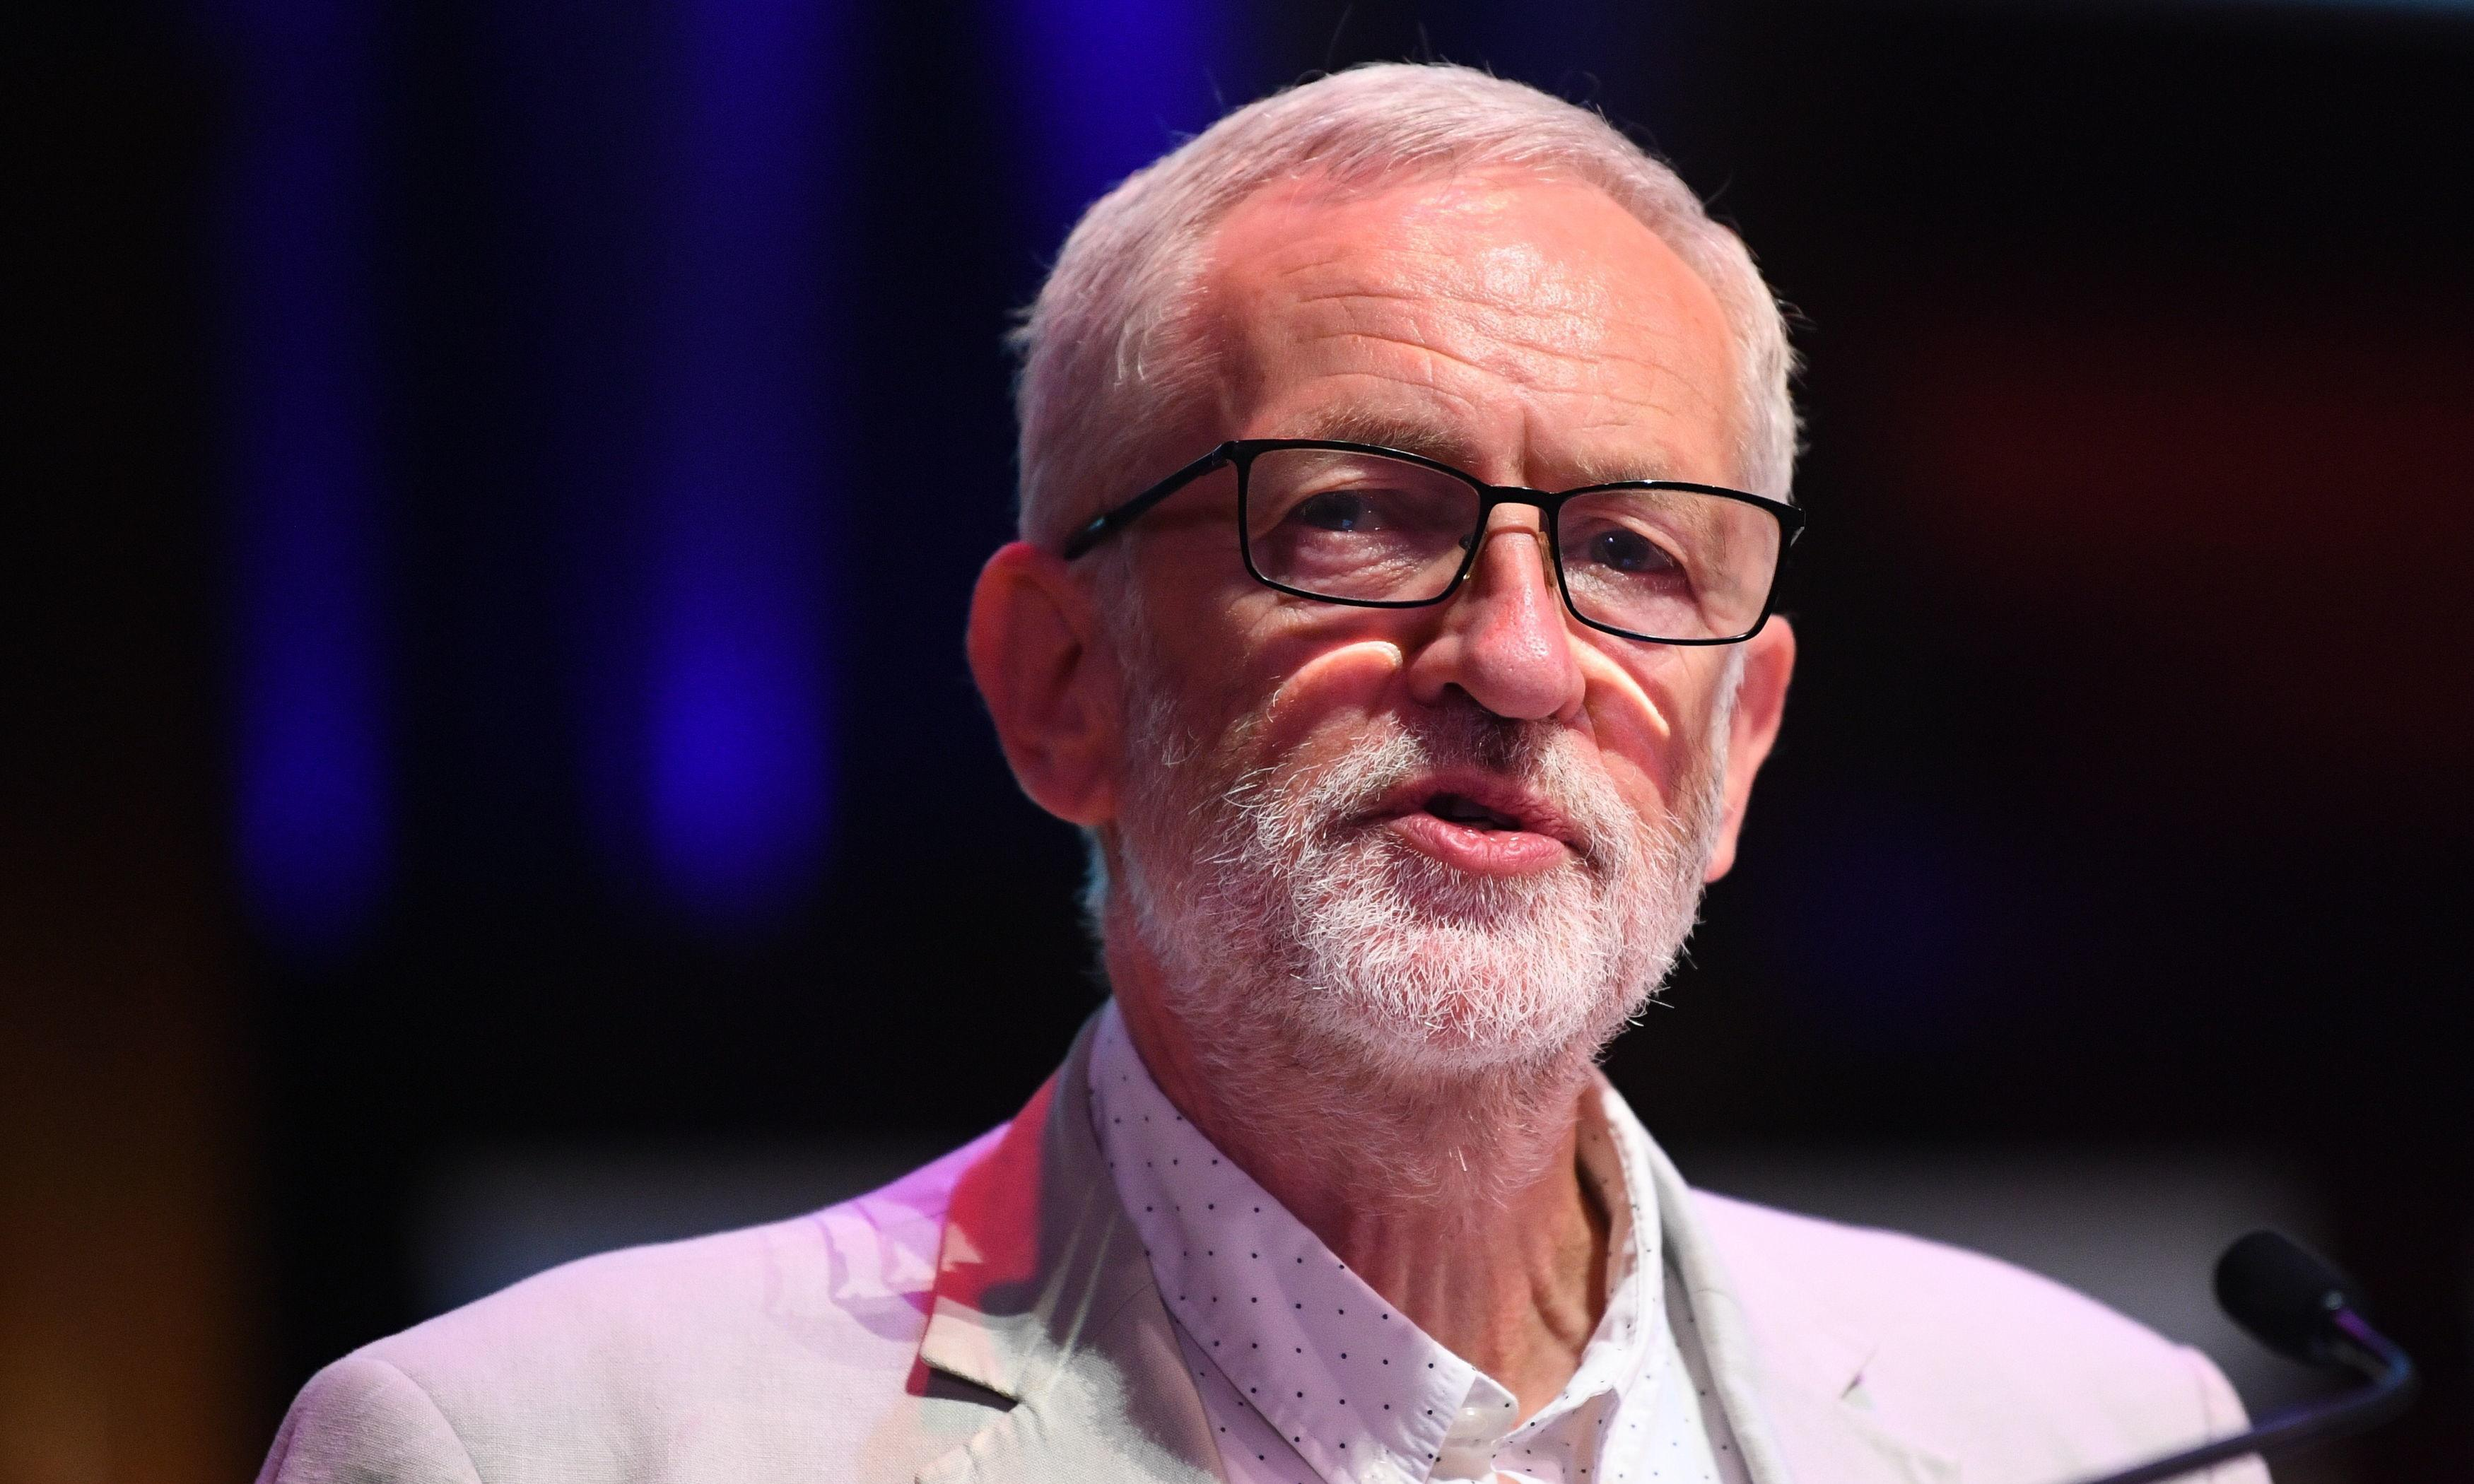 Corbyn could have been the nation's saviour. But he's just too tribal